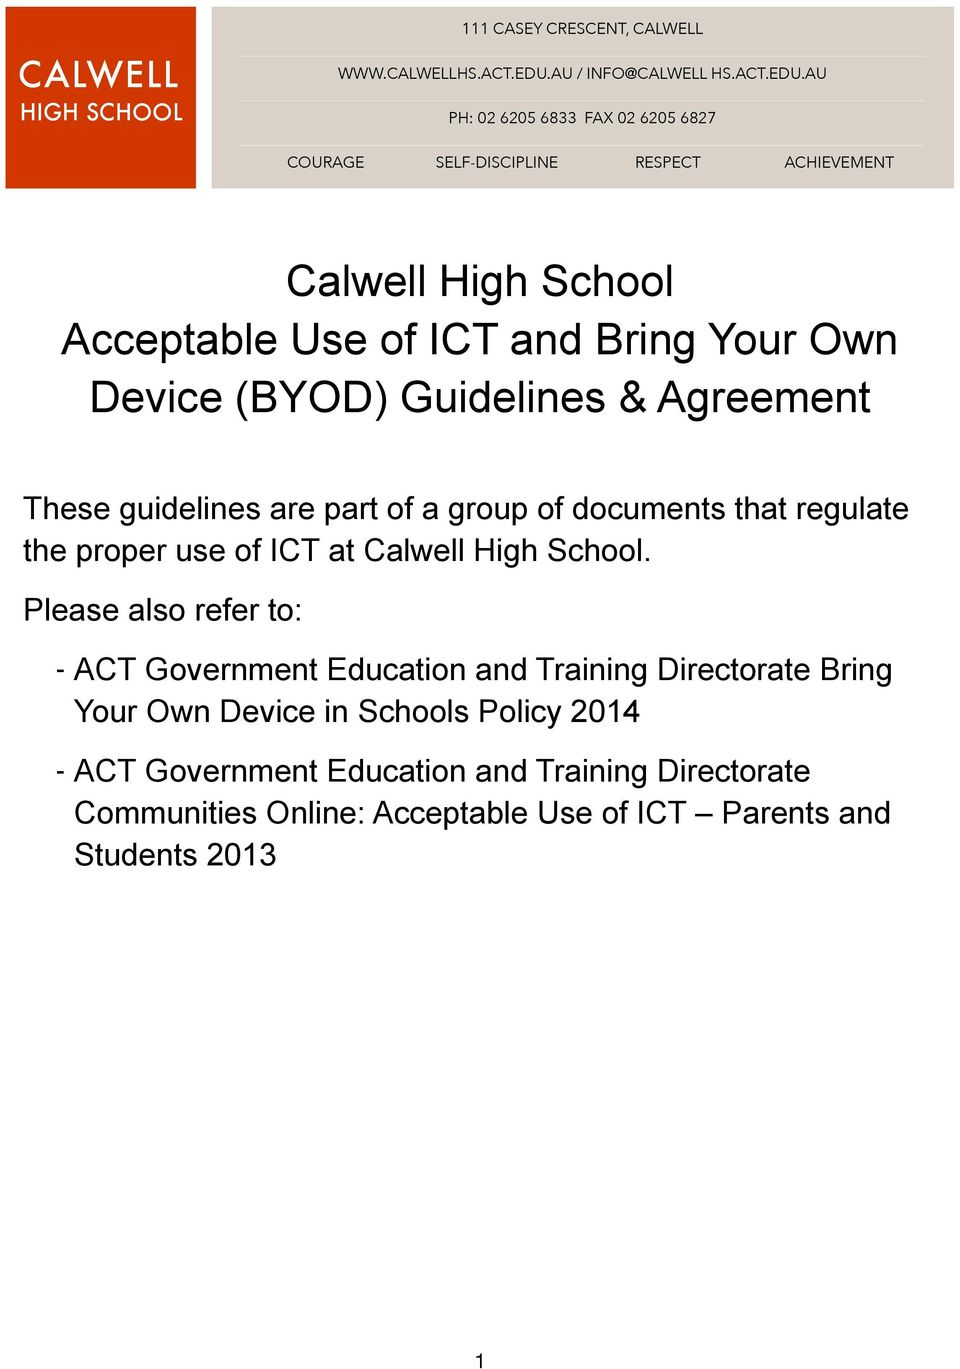 AU PH: 02 6205 6833 FAX 02 6205 6827 COURAGE SELF-DISCIPLINE RESPECT ACHIEVEMENT Calwell High School Acceptable Use of ICT and Bring Your Own Device